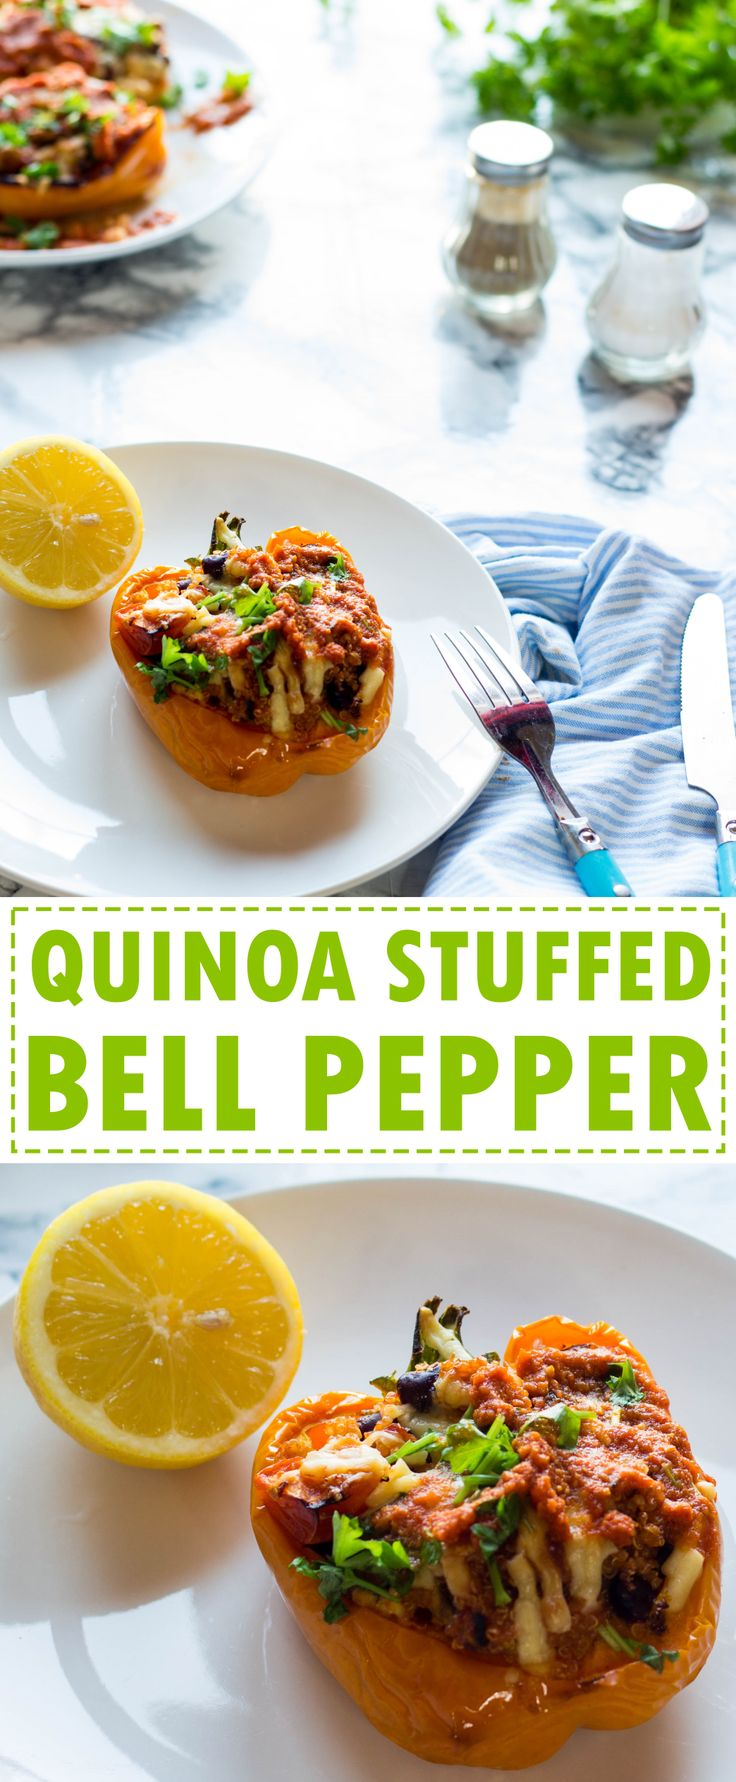 Easy and healthy quinoa stuffed bell pepper recipe. Prep can be done in under 15 minutes and then you can let oven do the hard work!